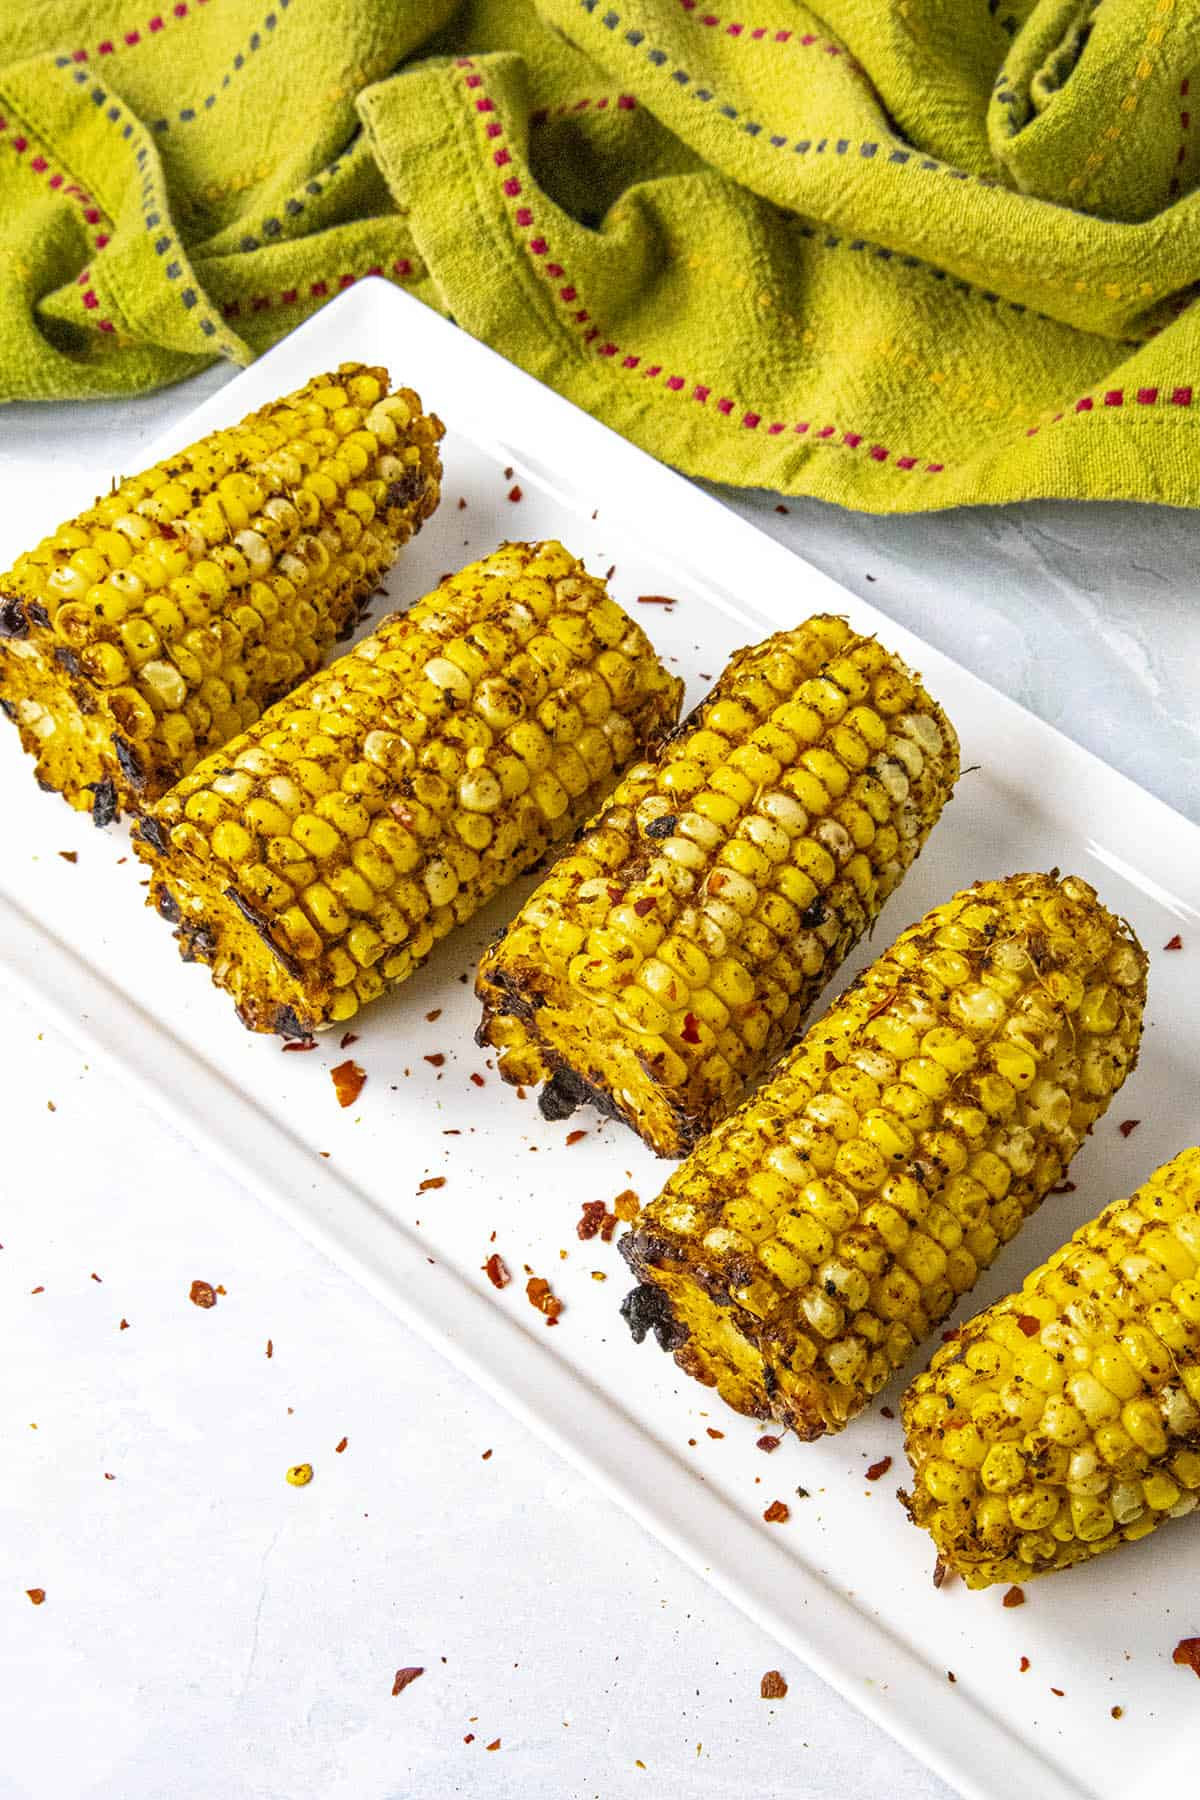 Grilled corn on the cob, ready to serve